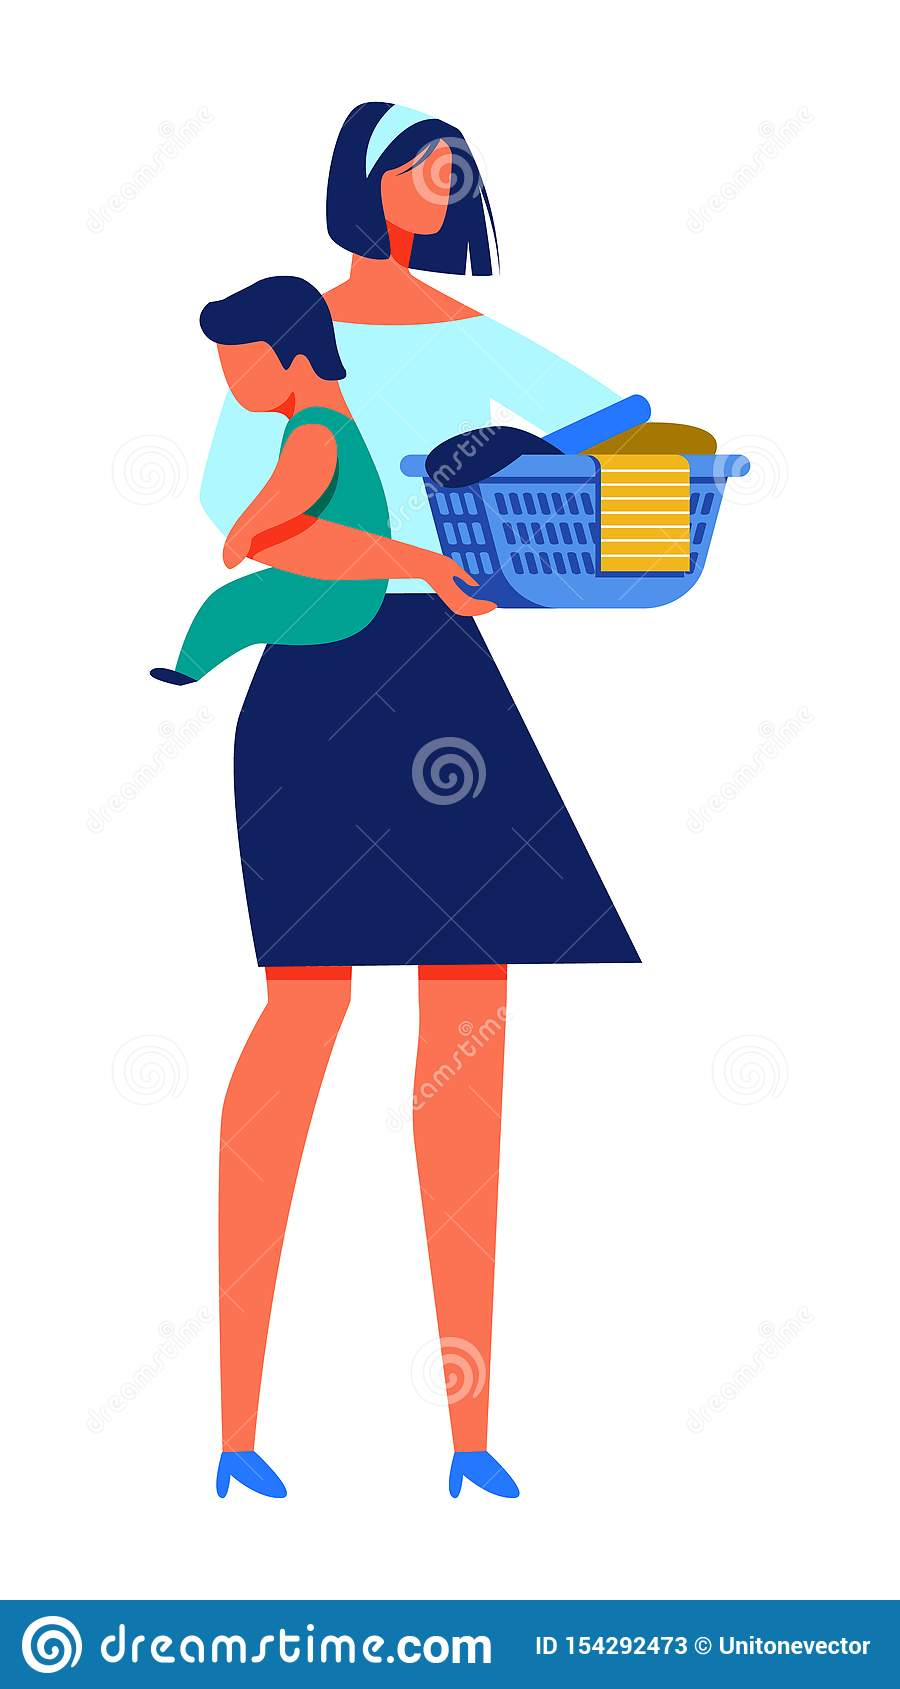 Woman with Baby in Hand Hold Basket with Laundry.